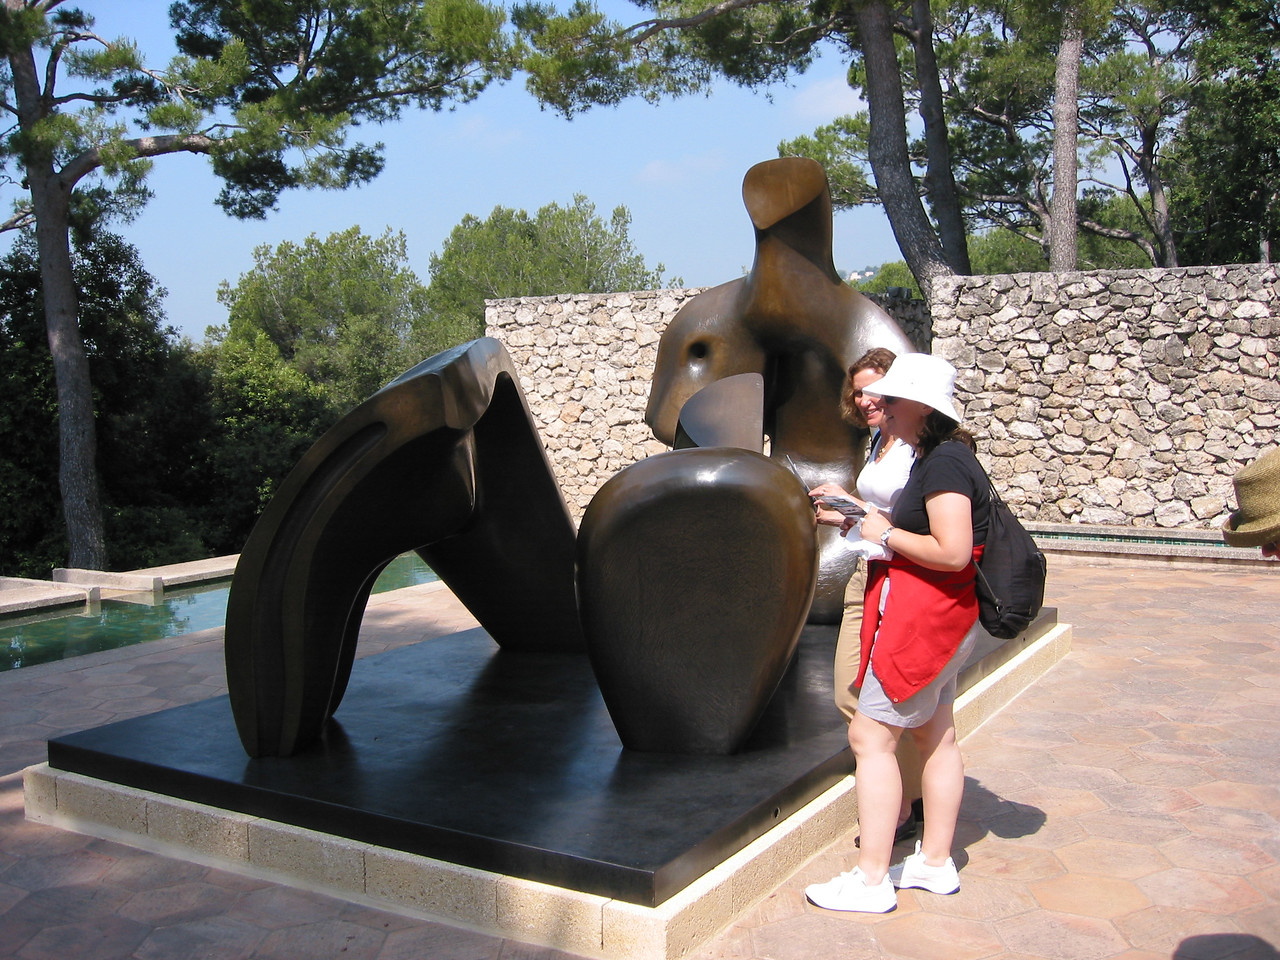 Fondation Maeght museum, St Paul de Vence